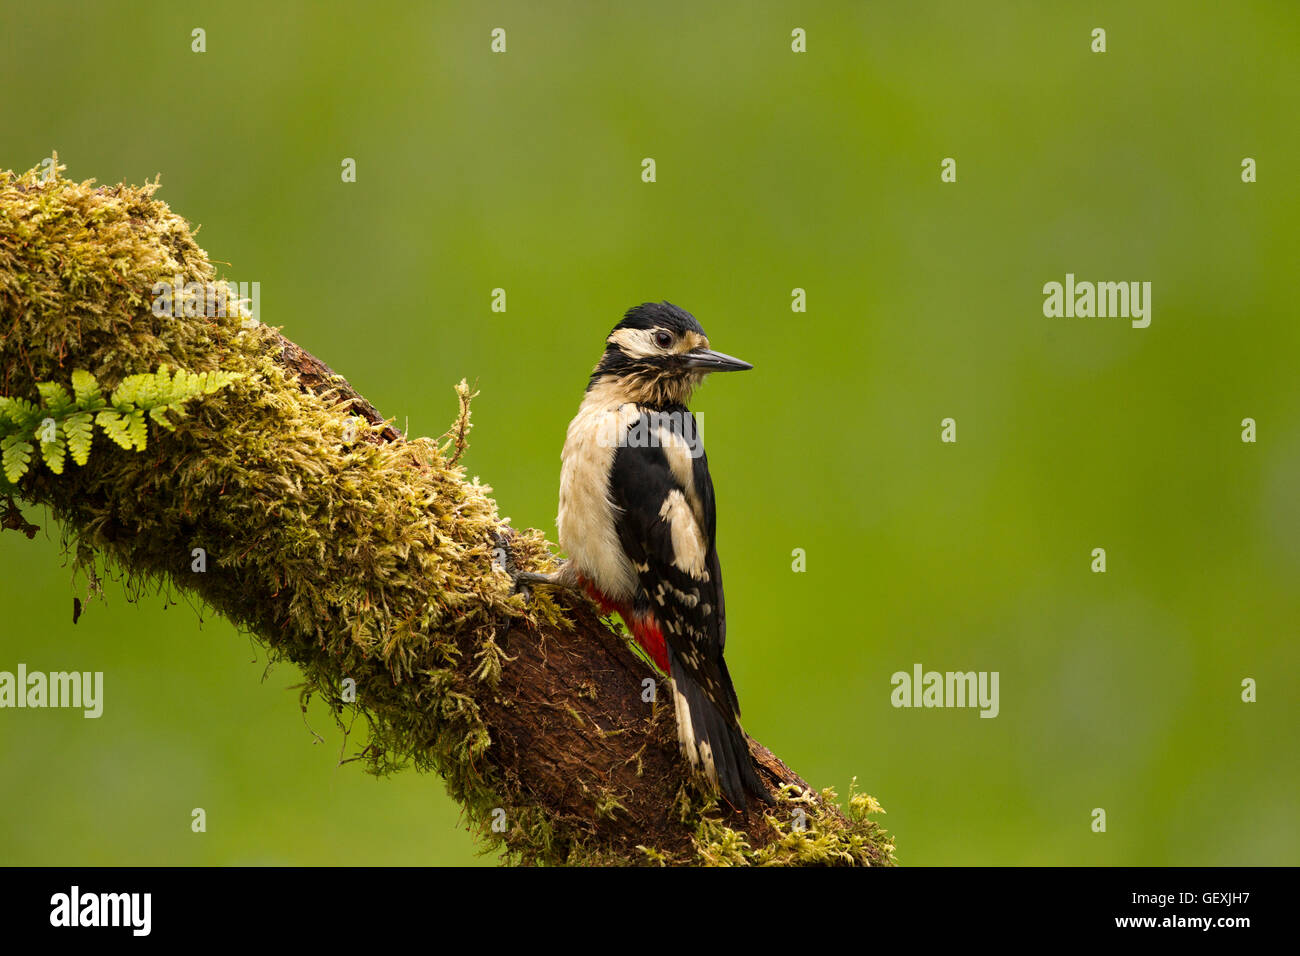 Greater Spotted Woodpecker - Stock Image